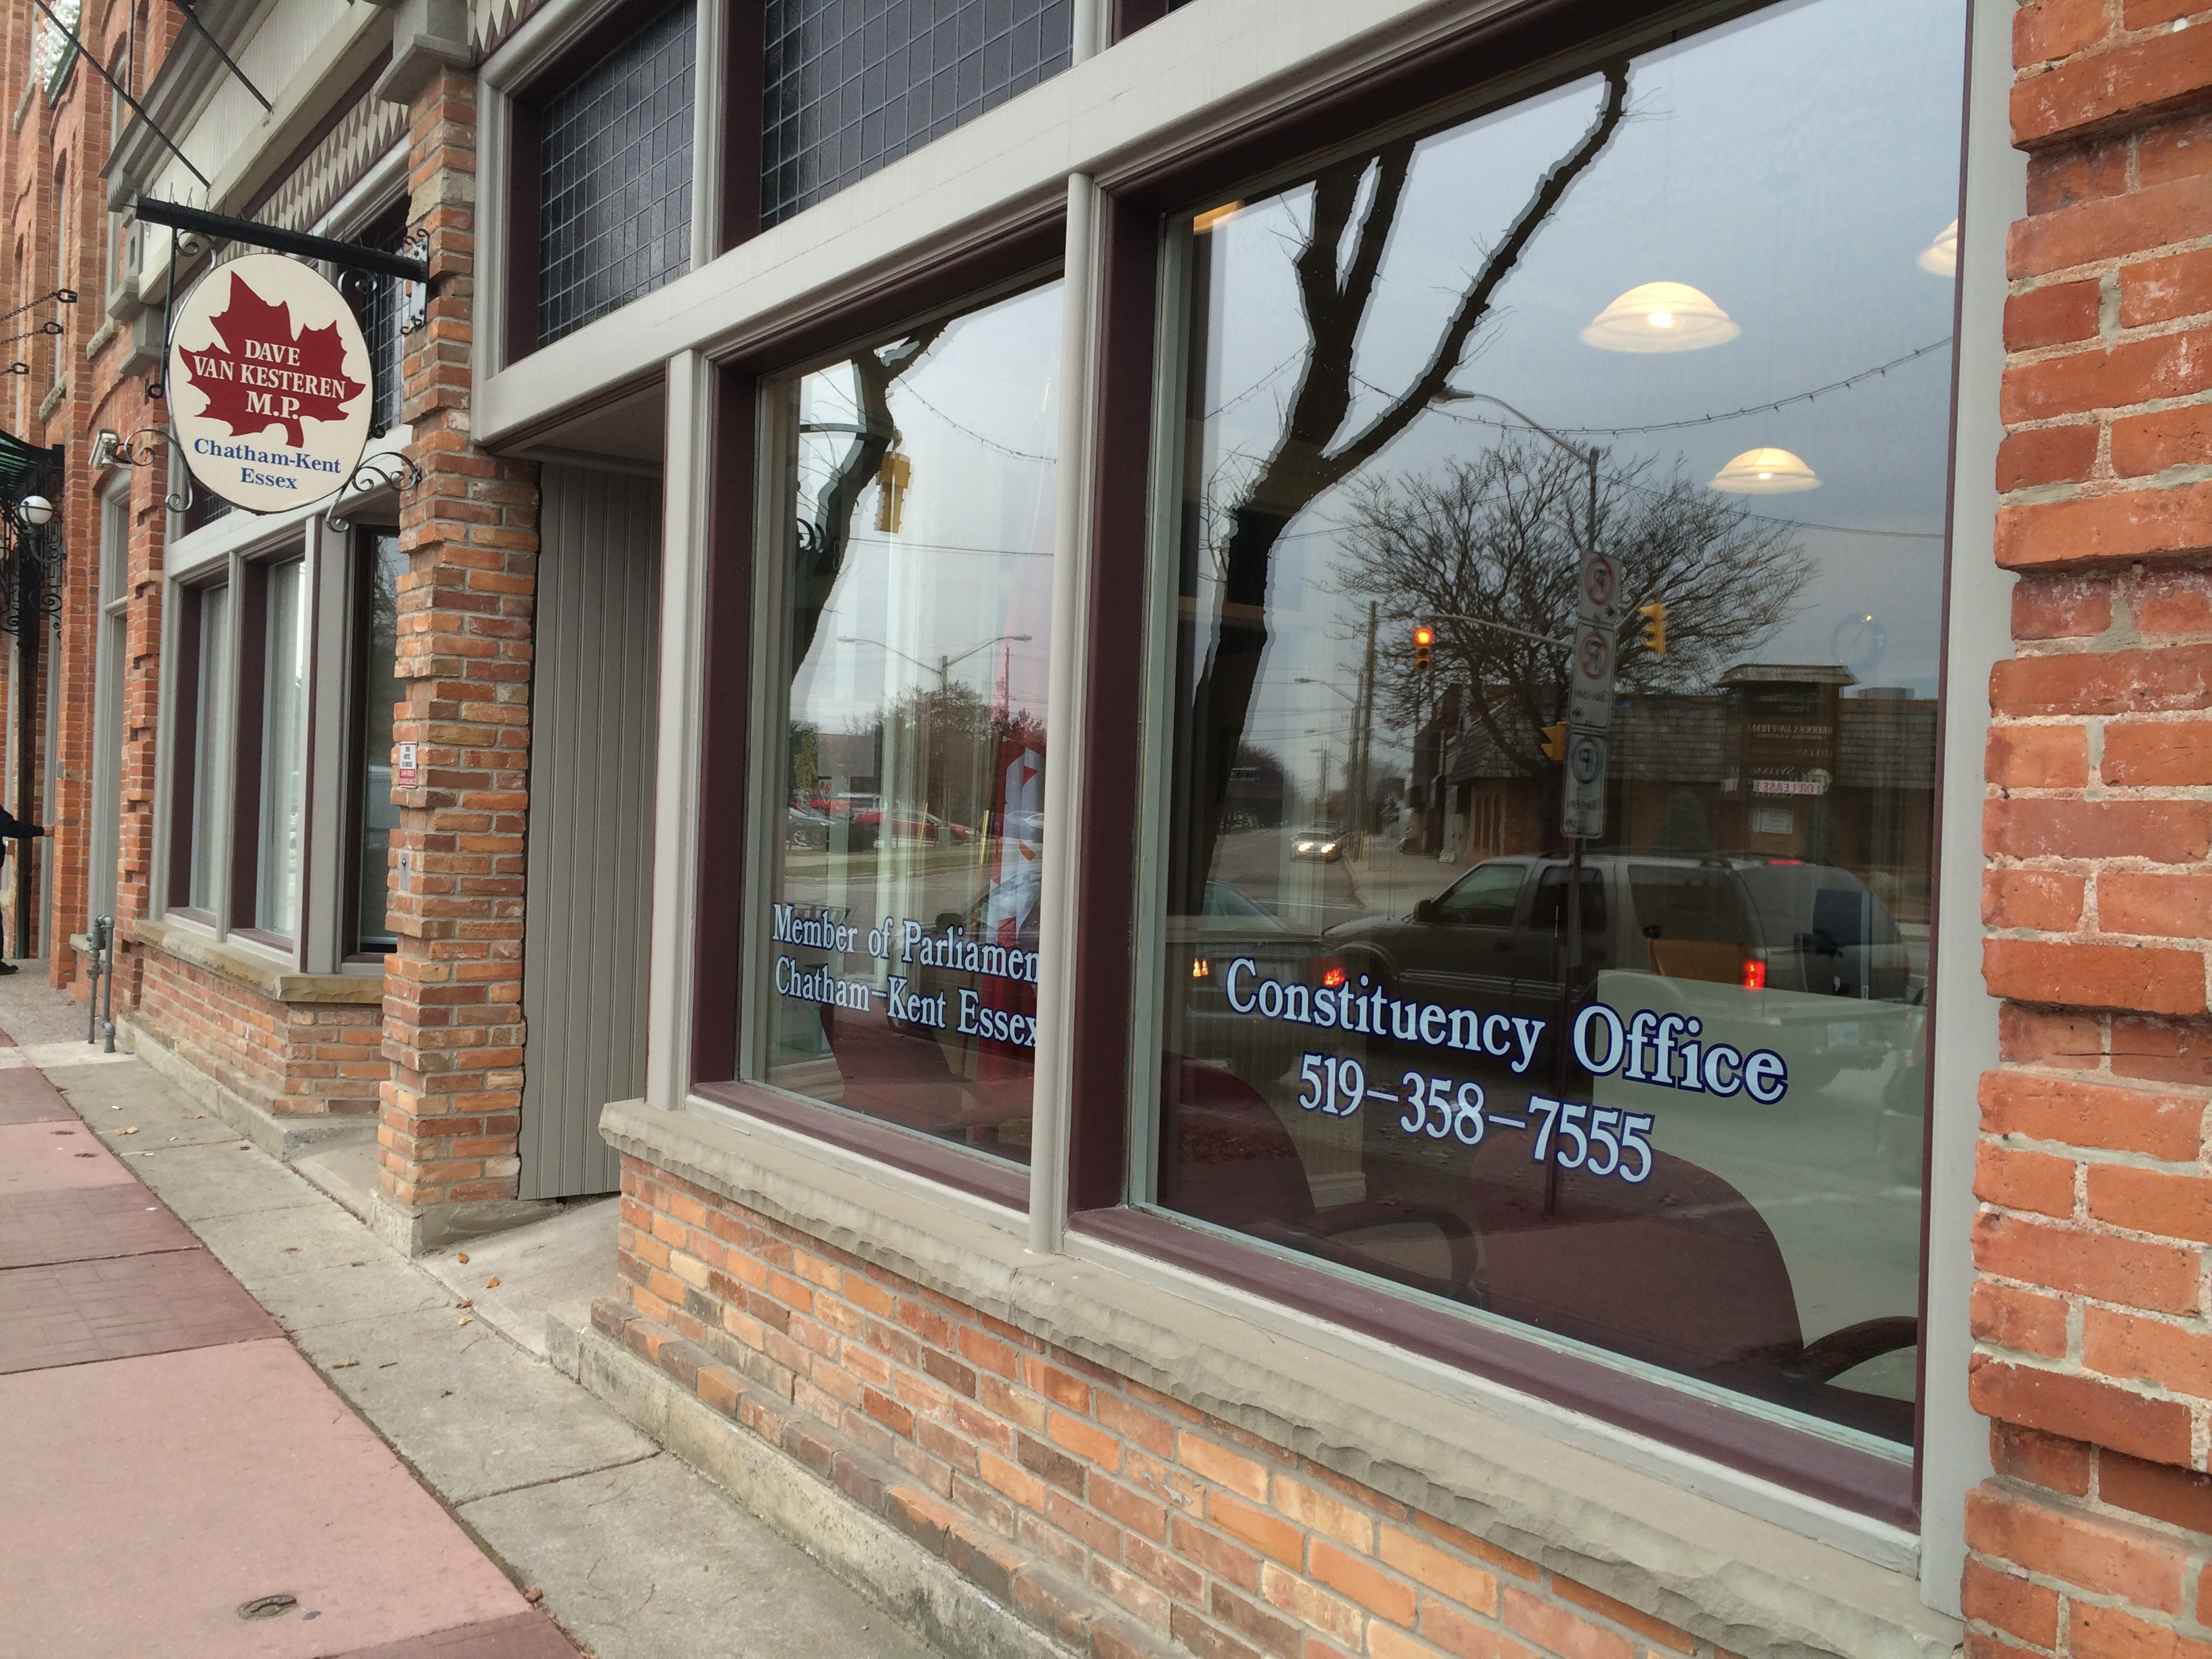 Chatham-Kent-Essex MP Dave Van Kesteren's office in Chatham on King Street is seen in this December 5, 2014 photo before being vacated as Retro Suites expands its footprint. (Photo by Ricardo Veneza)